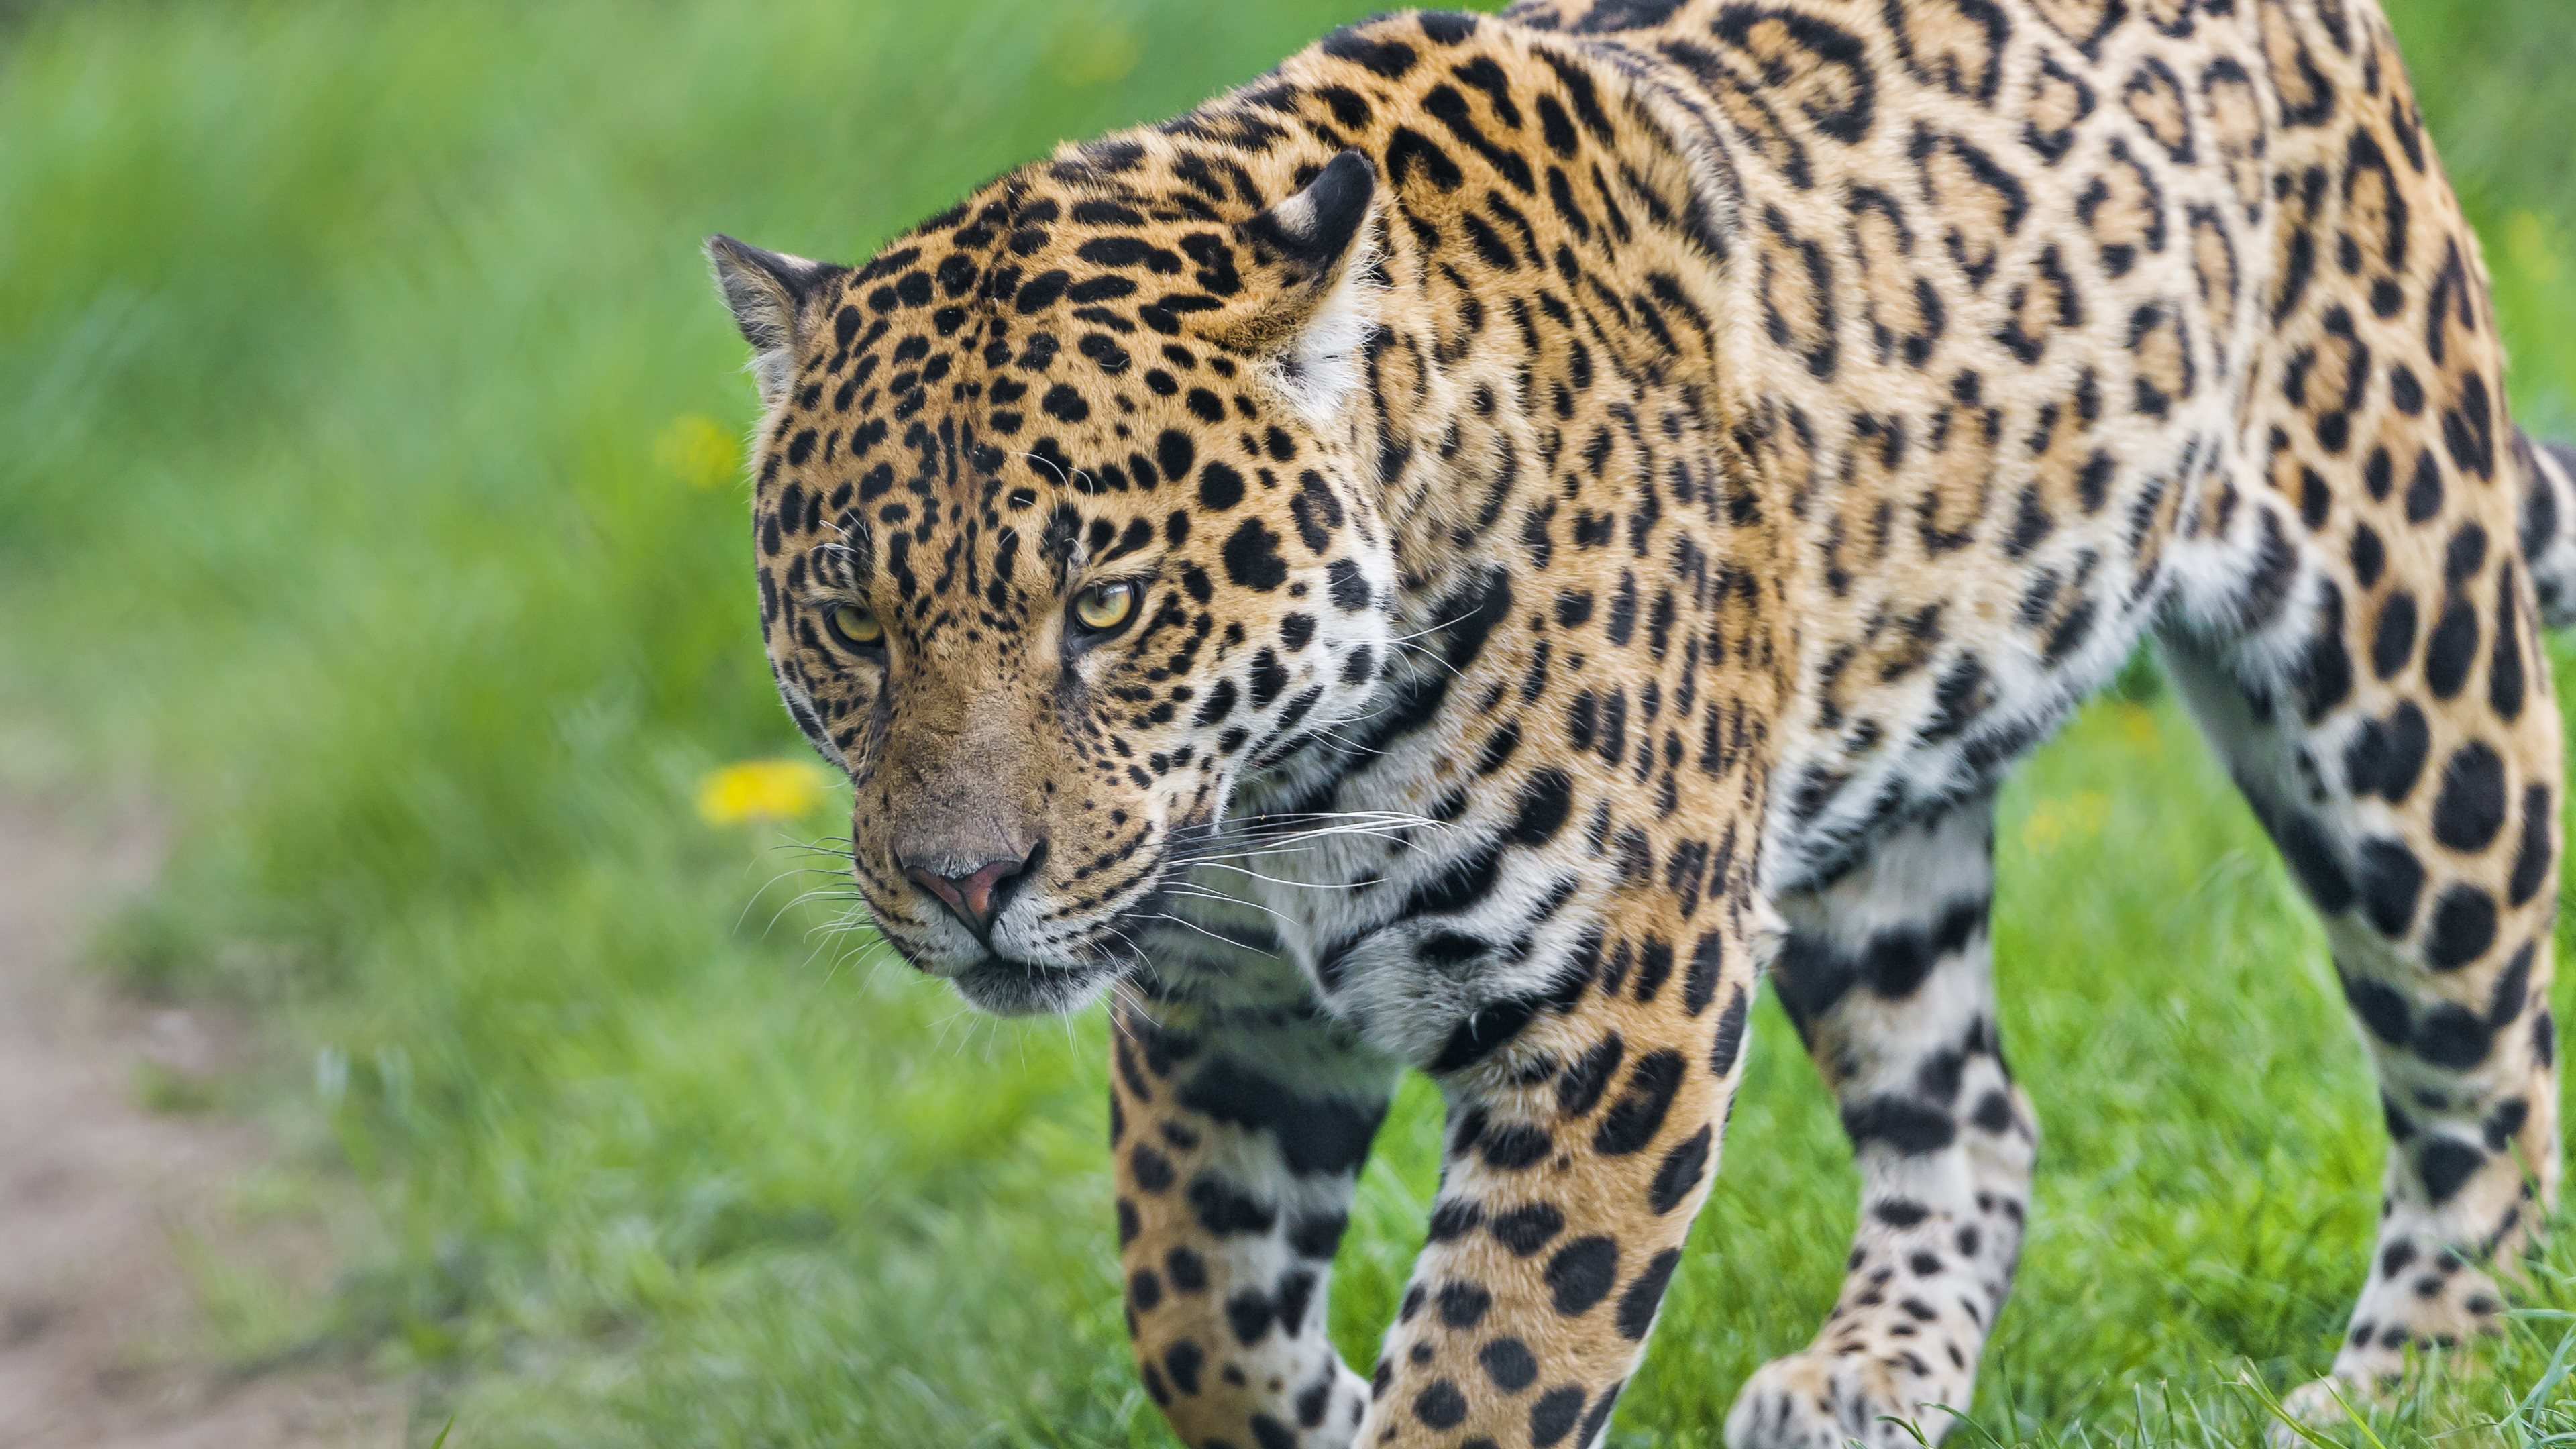 jaguar the animals wallpapers in hd 4k and wide sizes